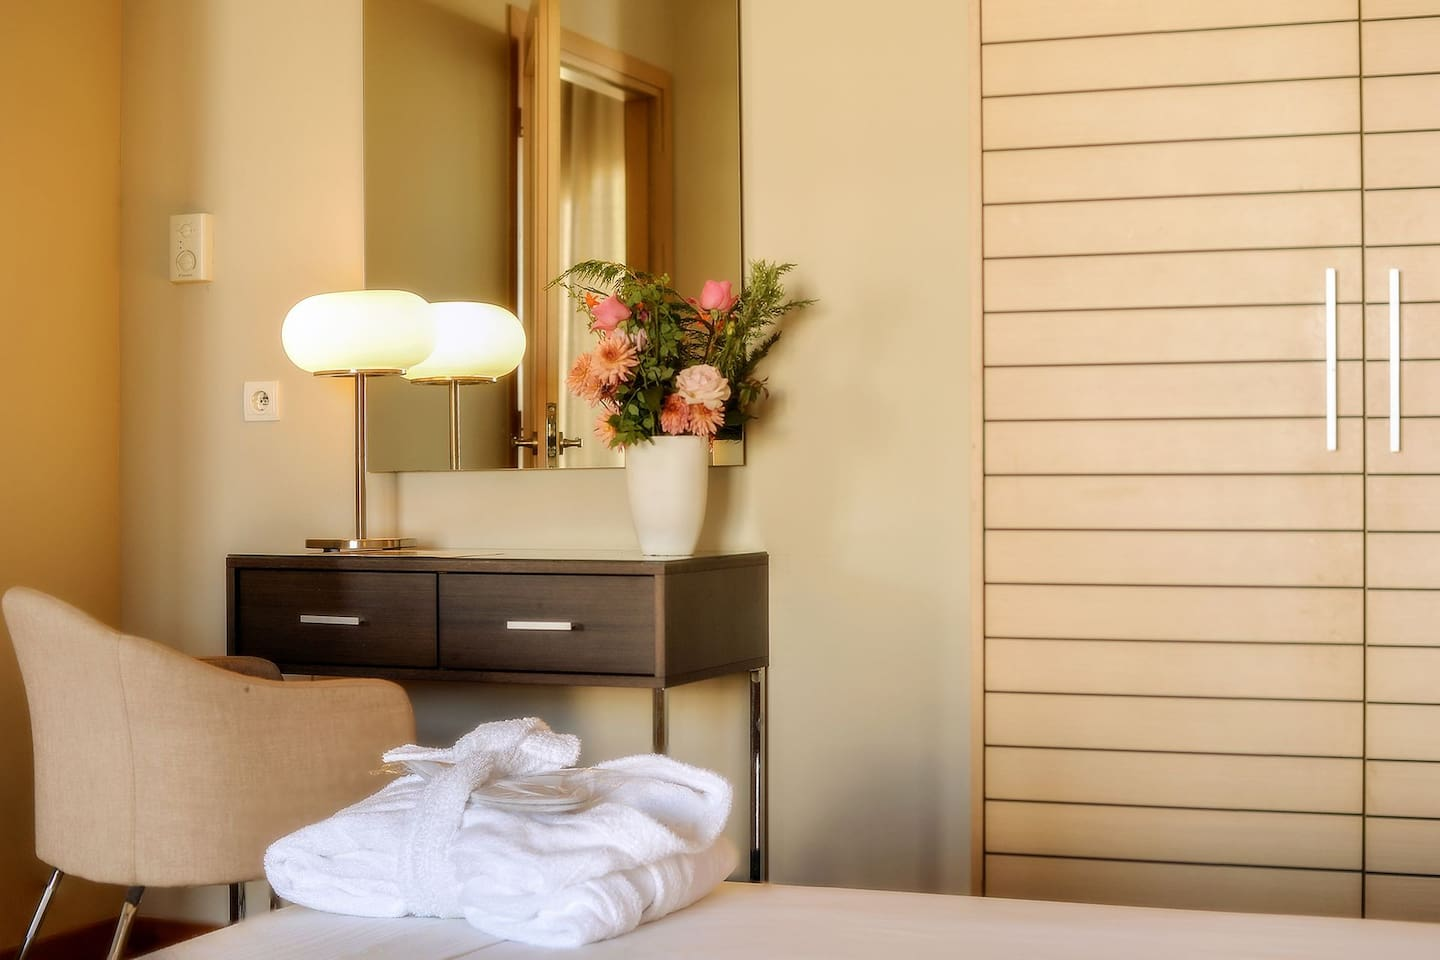 The Single Room City View enjoys magnificent view of the city of Thessaloniki and a private balcony. Ideal for the solo business or leisure traveler in downtown Thessaloniki thats desires direct access to the city.